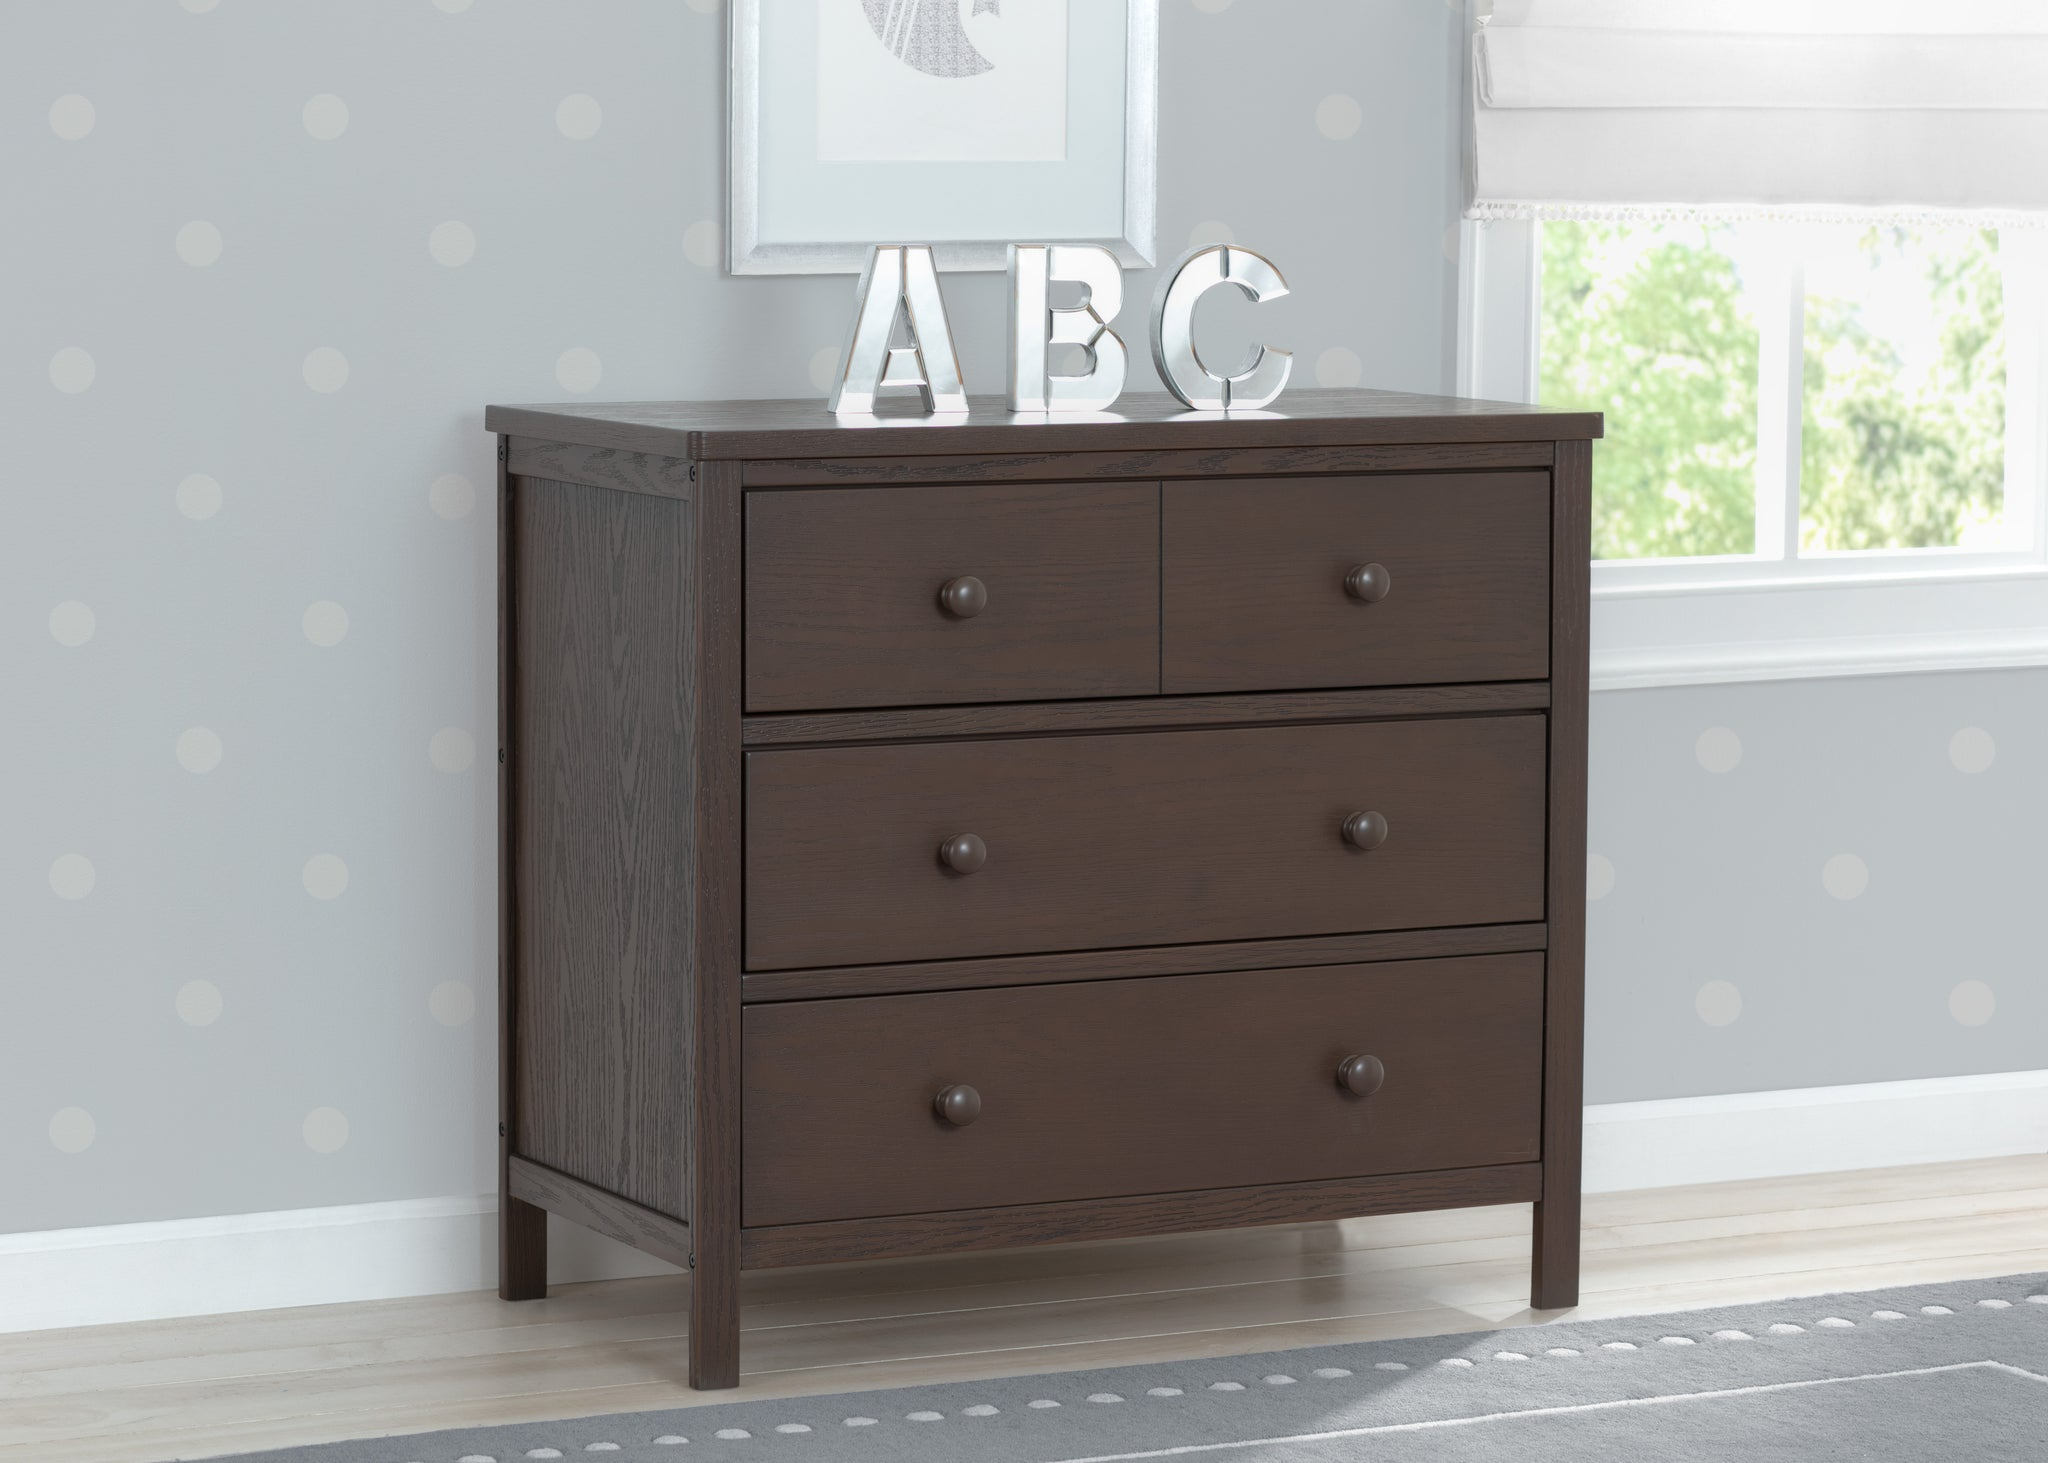 Delta Children Textured Cocoa (1350) Middleton 3 Drawer Dresser, Hangtag View